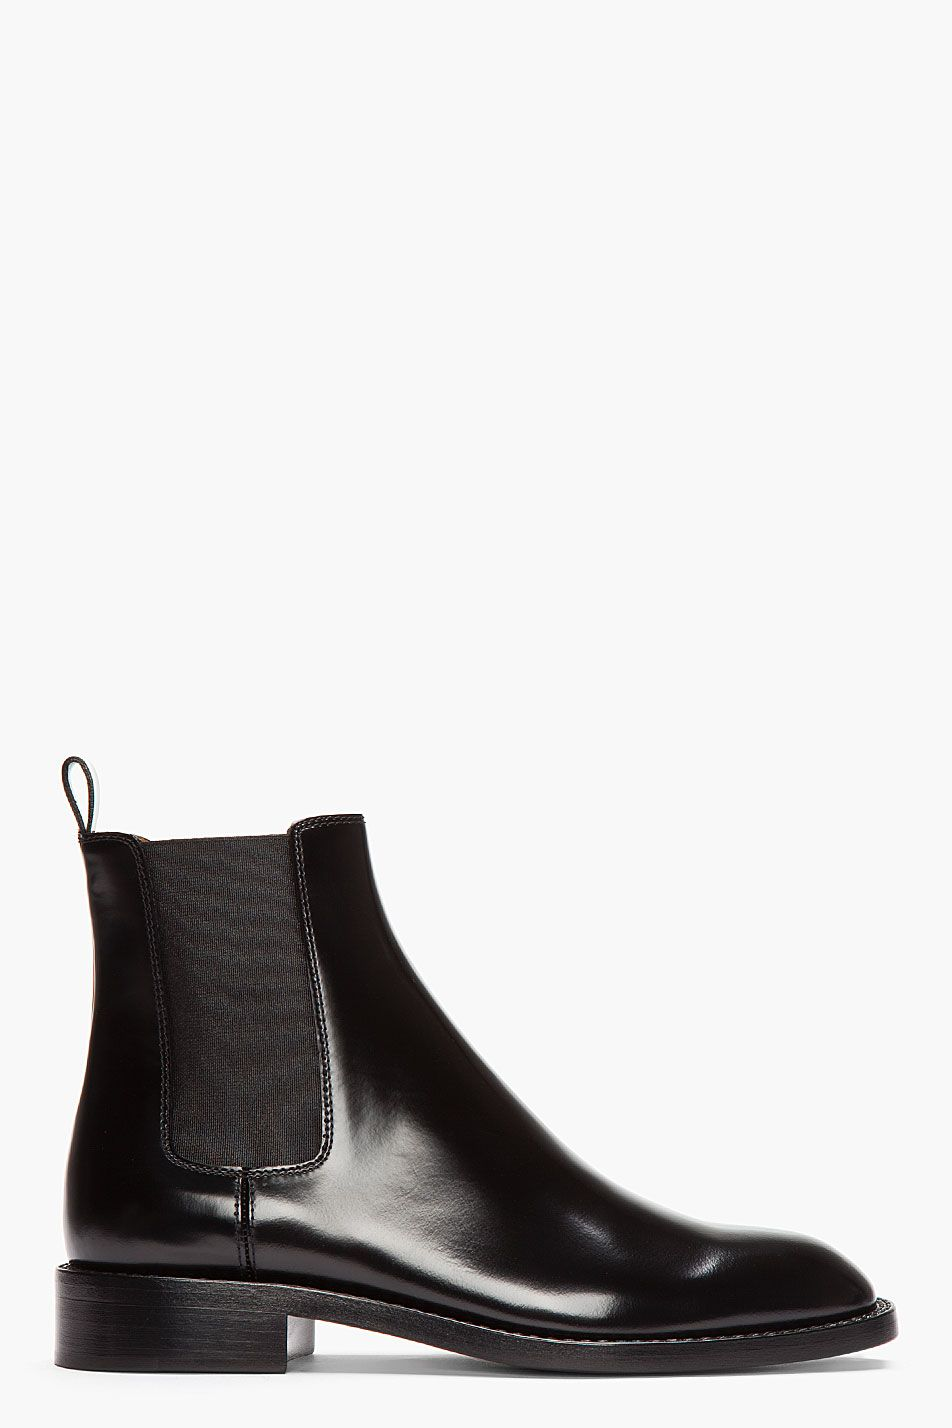 Saint Laurent Black Patent Leather Rock Chelsea Boots Zapatos Bonitos Zapatos Moda Hombre